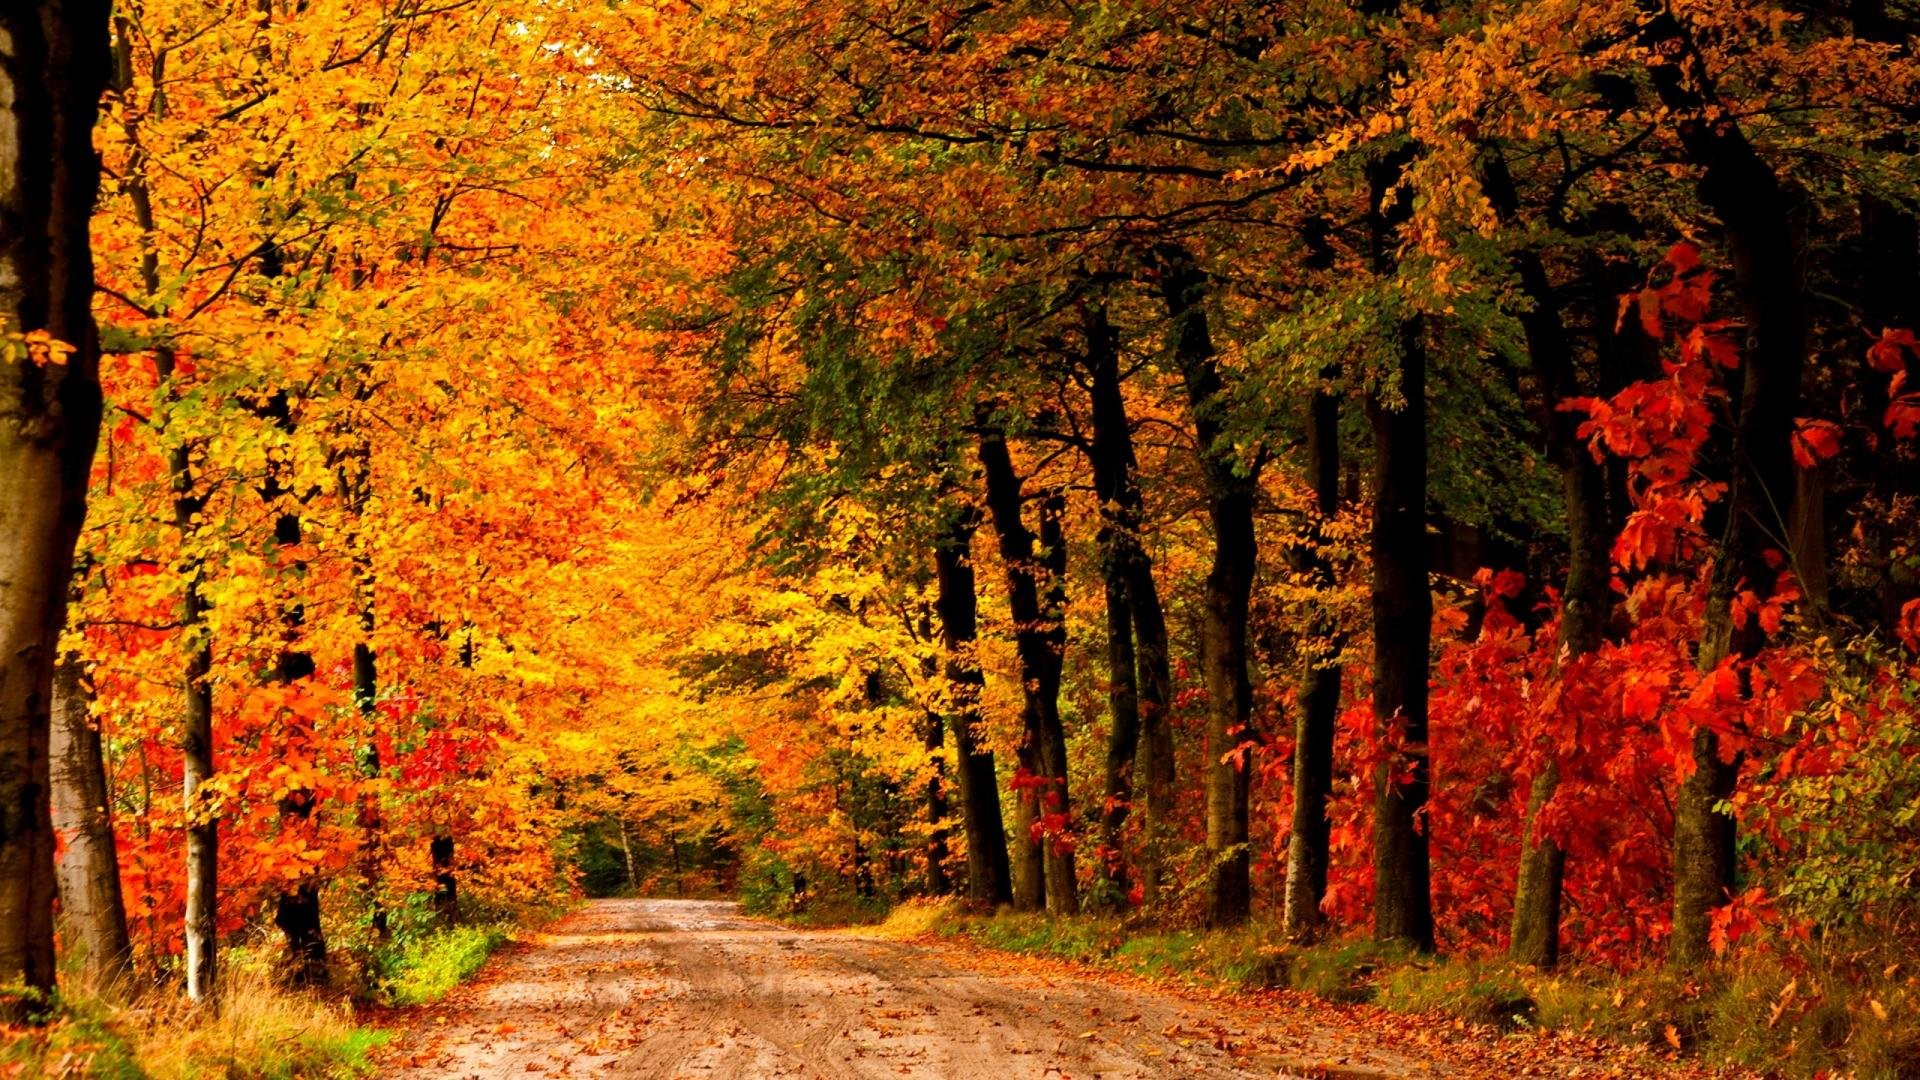 Fall Leaves Live Wallpaper Iphone Autumn Landscape Wallpaper 69 Images